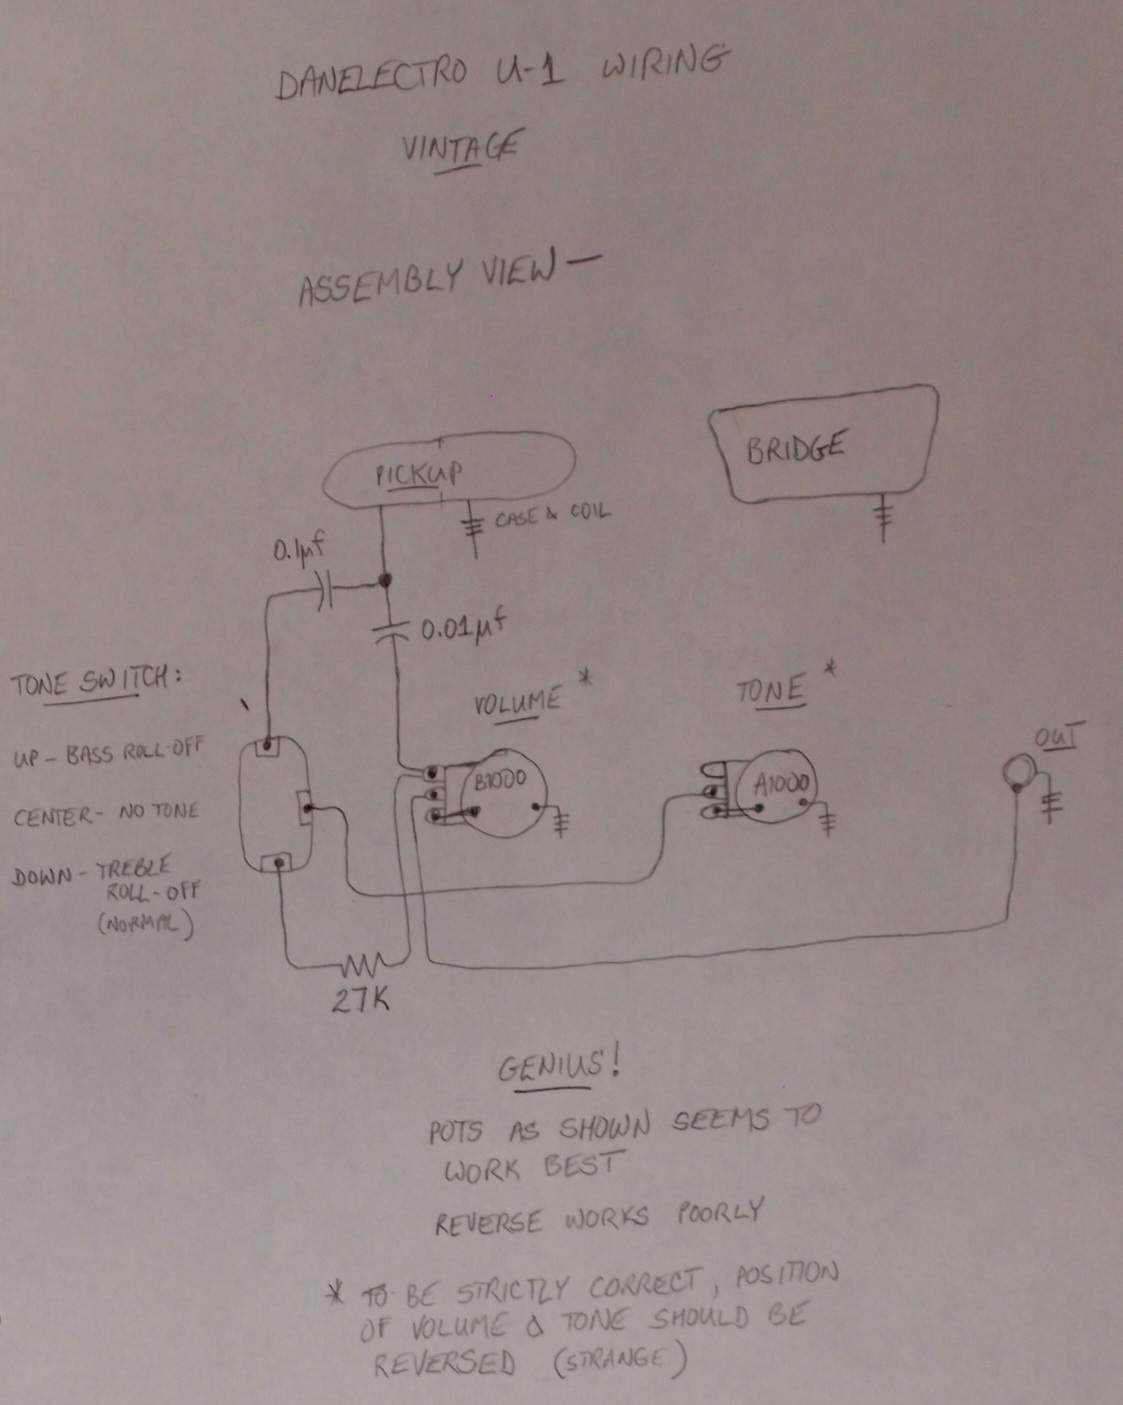 gibson single pickup wiring diagram 2001 s10 radio danelectro fab schematic get free image about